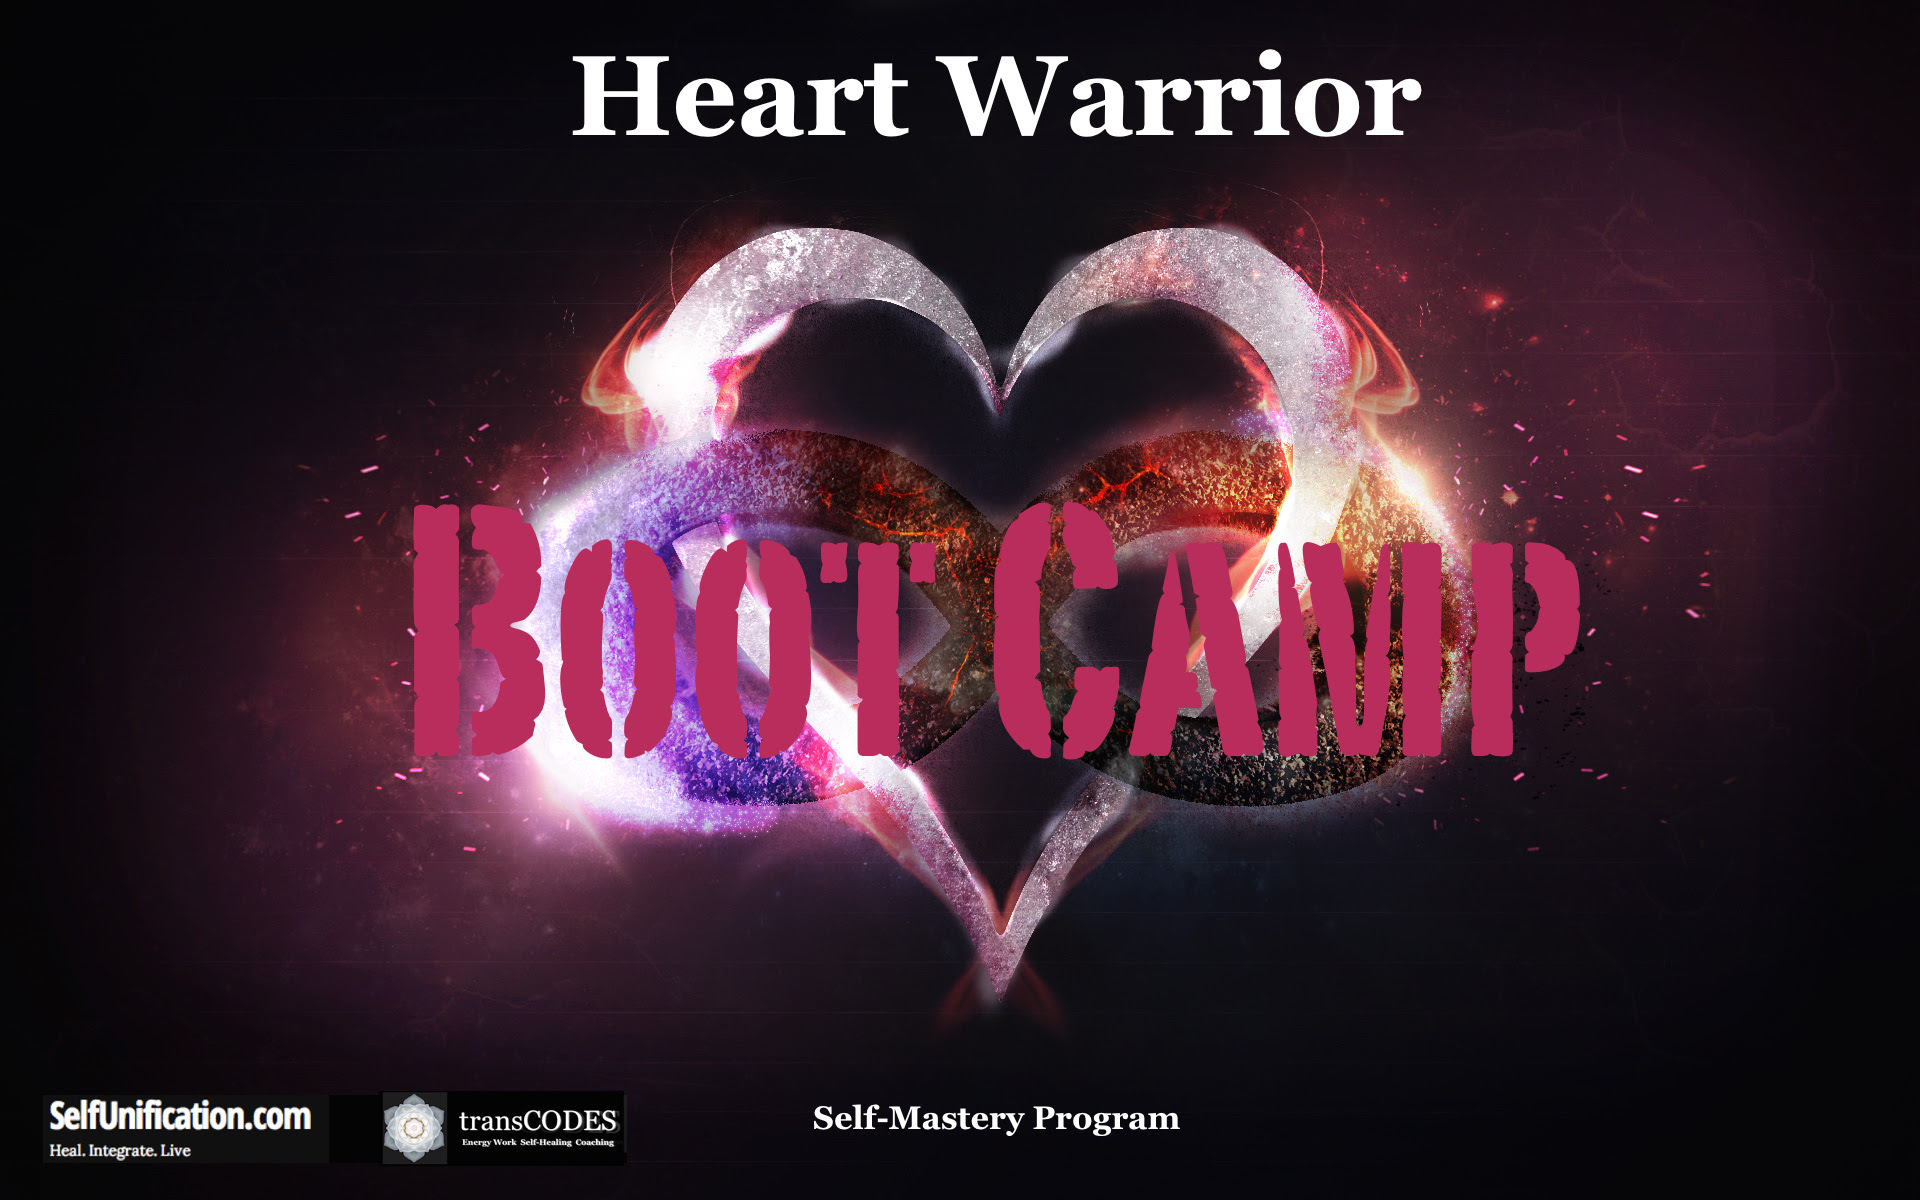 Heart Warrior – 2 spot for December 1st, 2017 Start